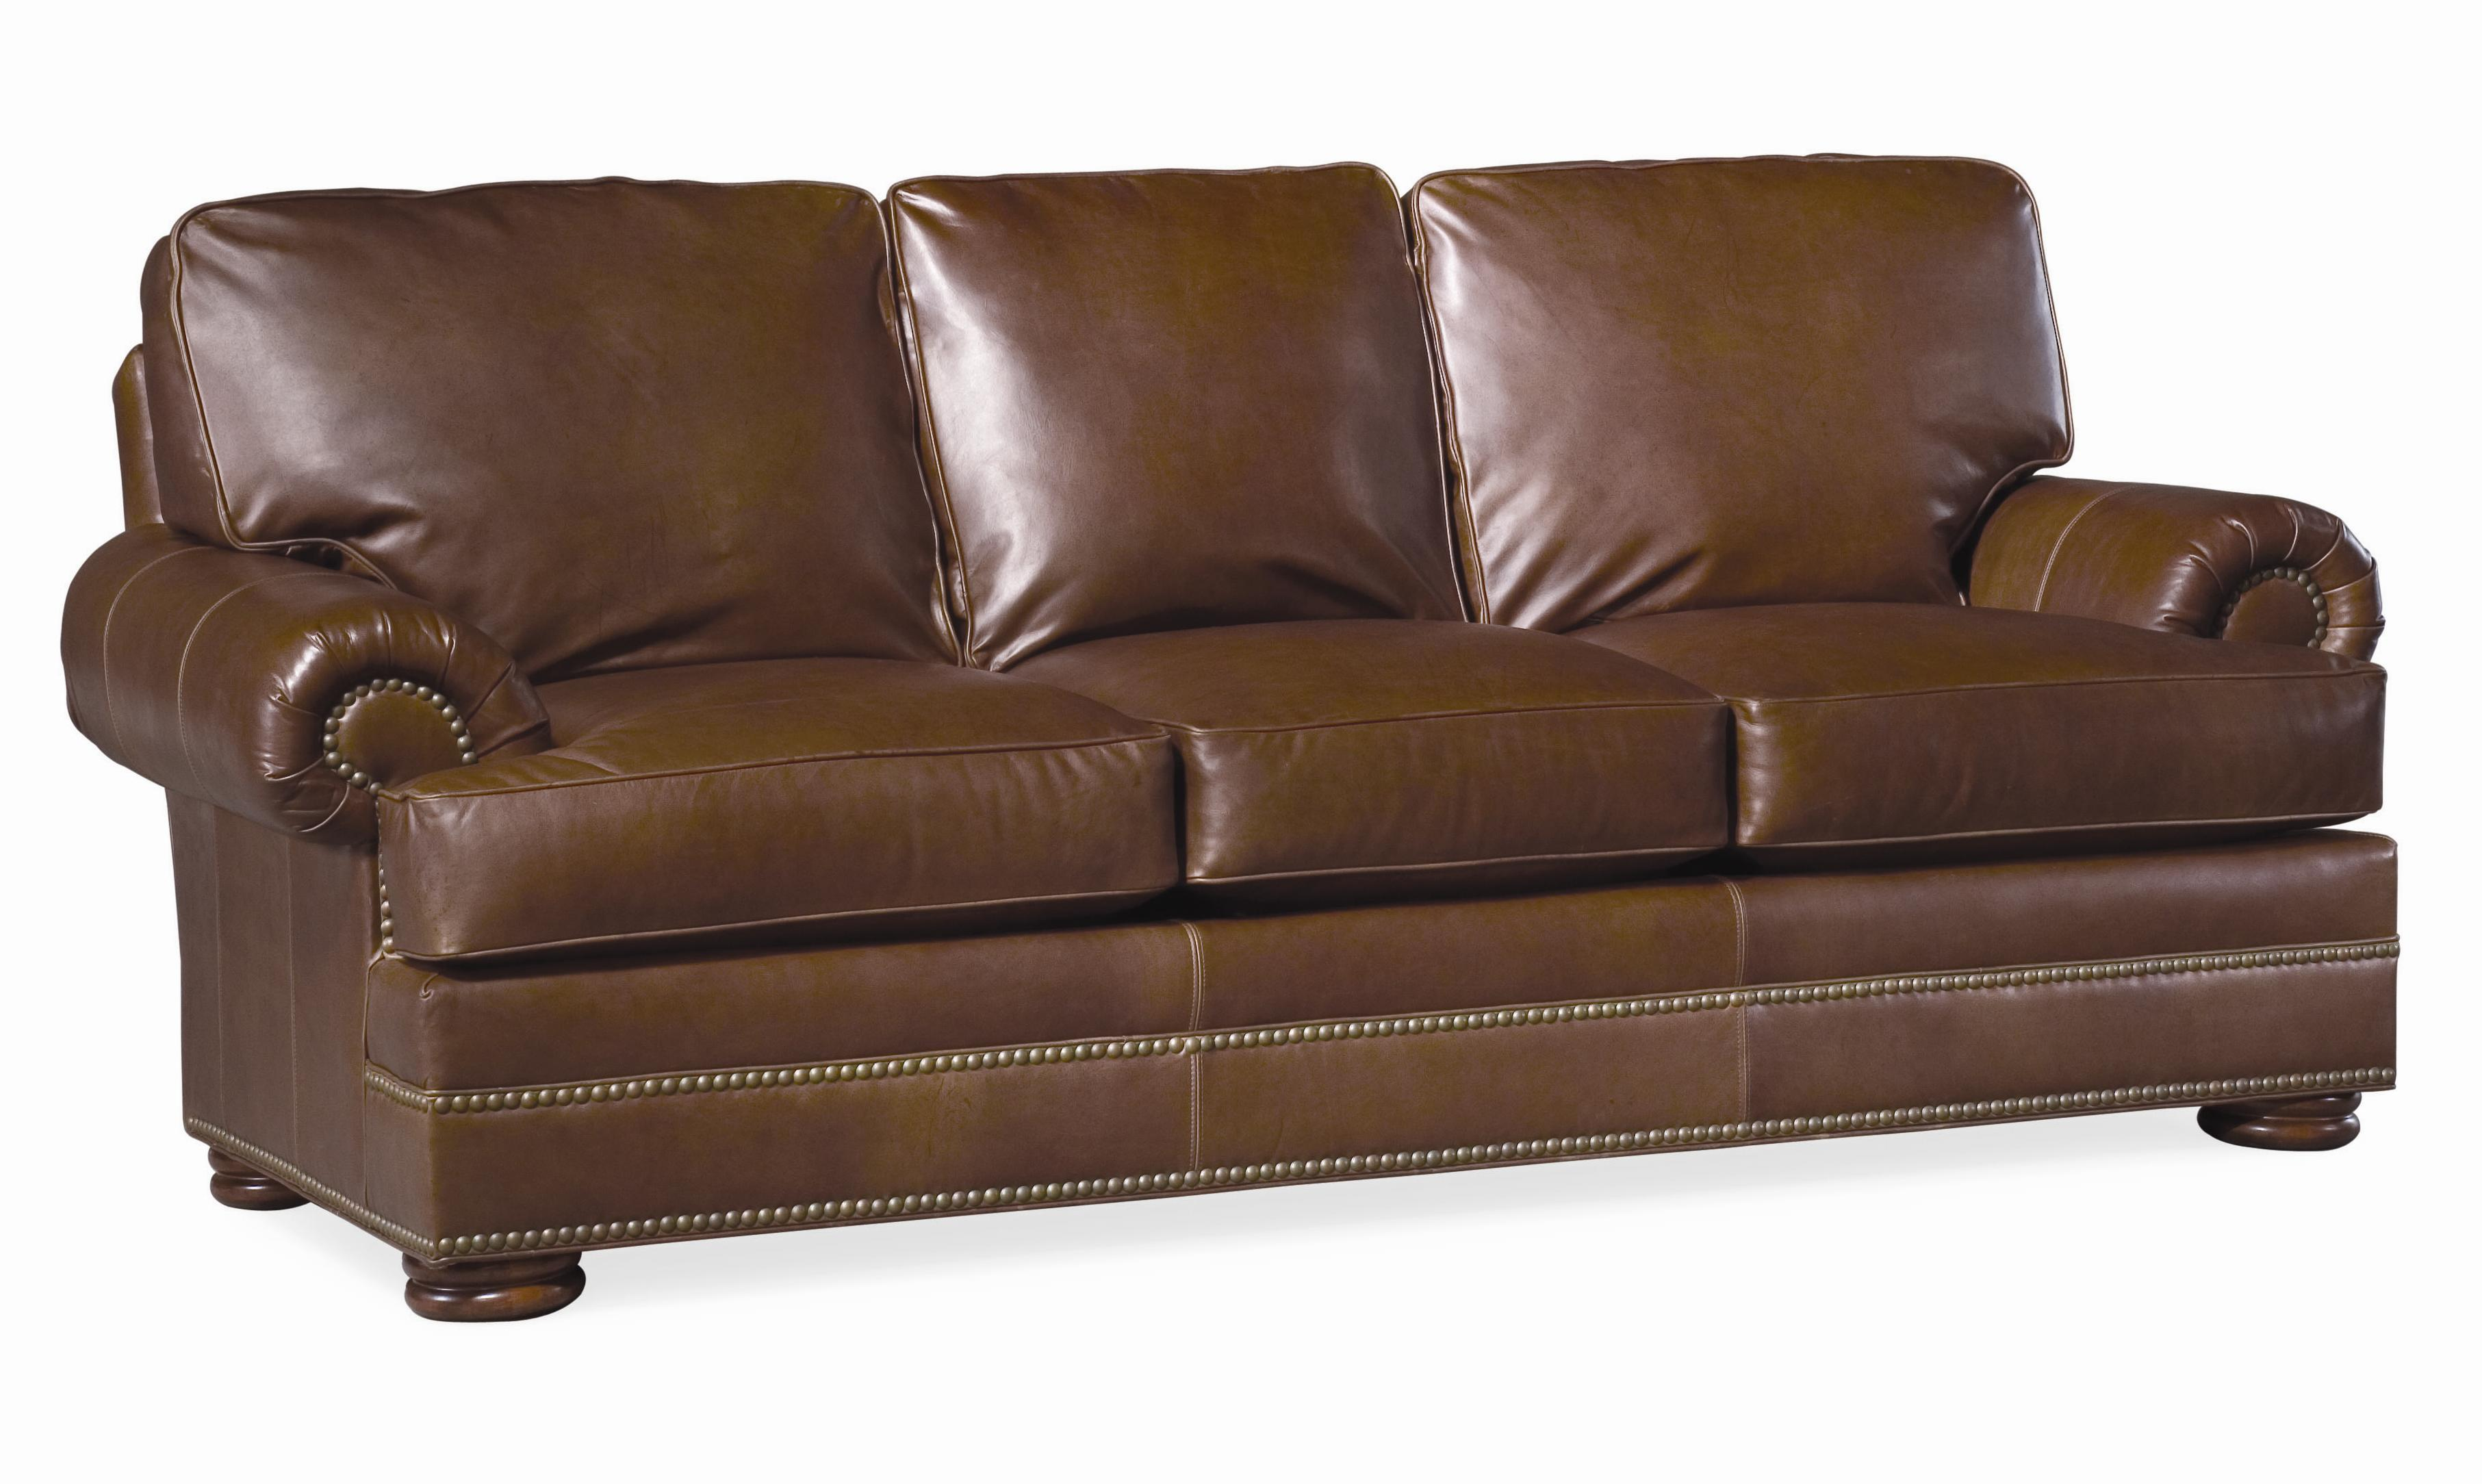 Thomasville Leather Choices Ashby Select Sofa Item Number 20706 520a